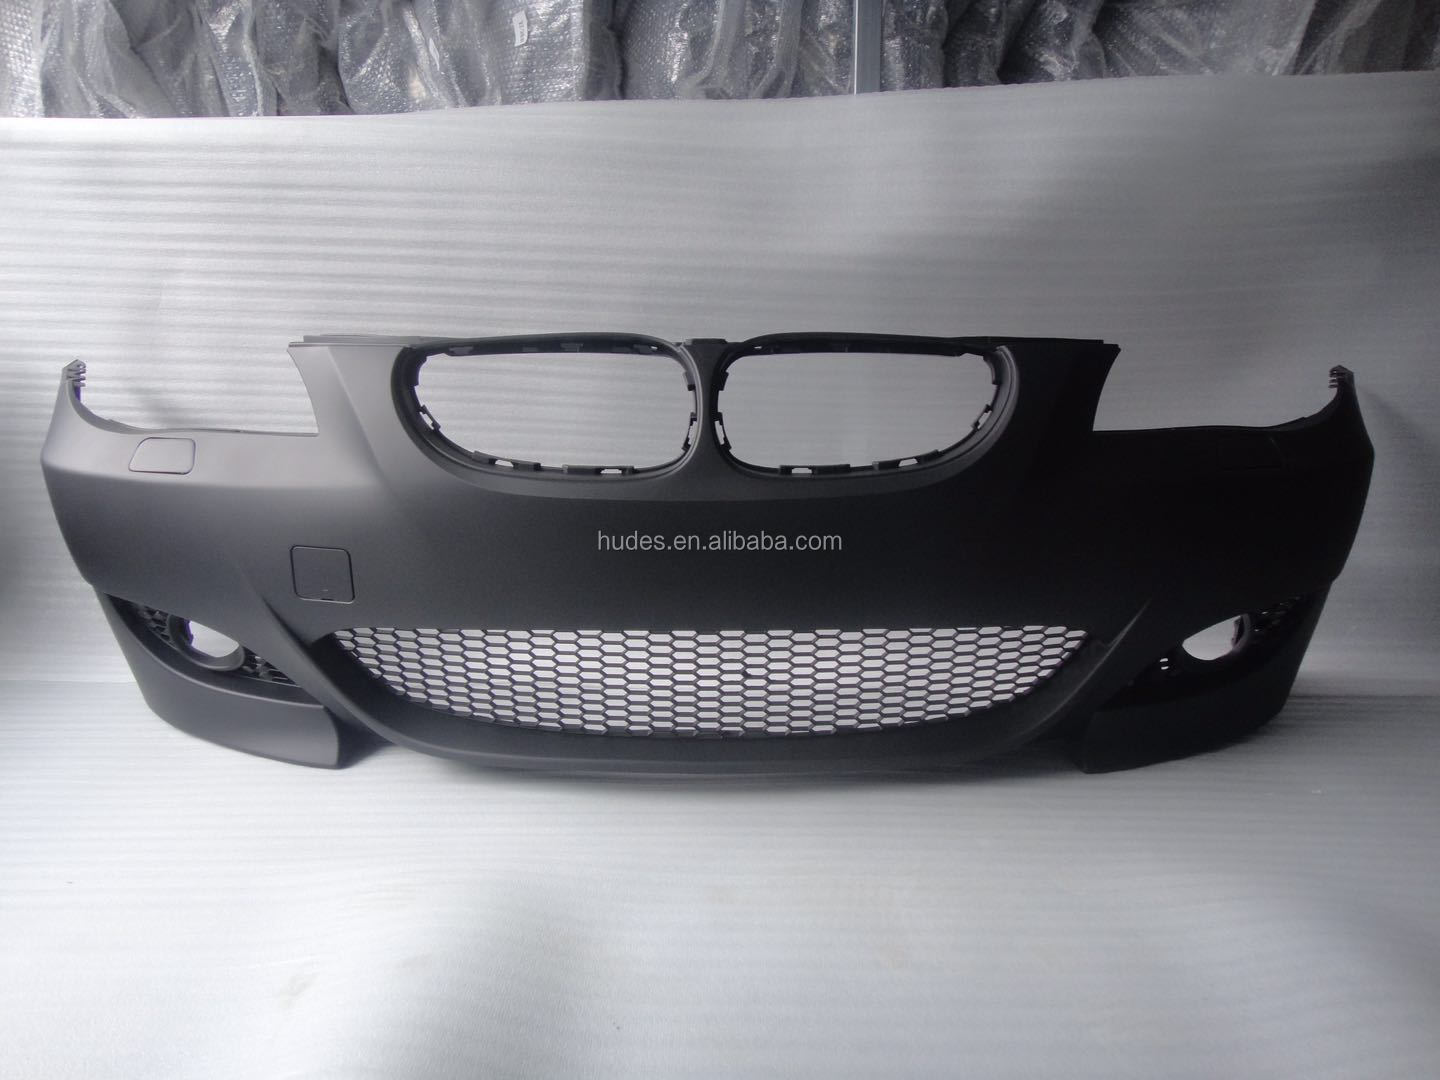 Body kit per BMW E60 M5 body kit,BMW 520i 525i 530i 545i M5 body kit